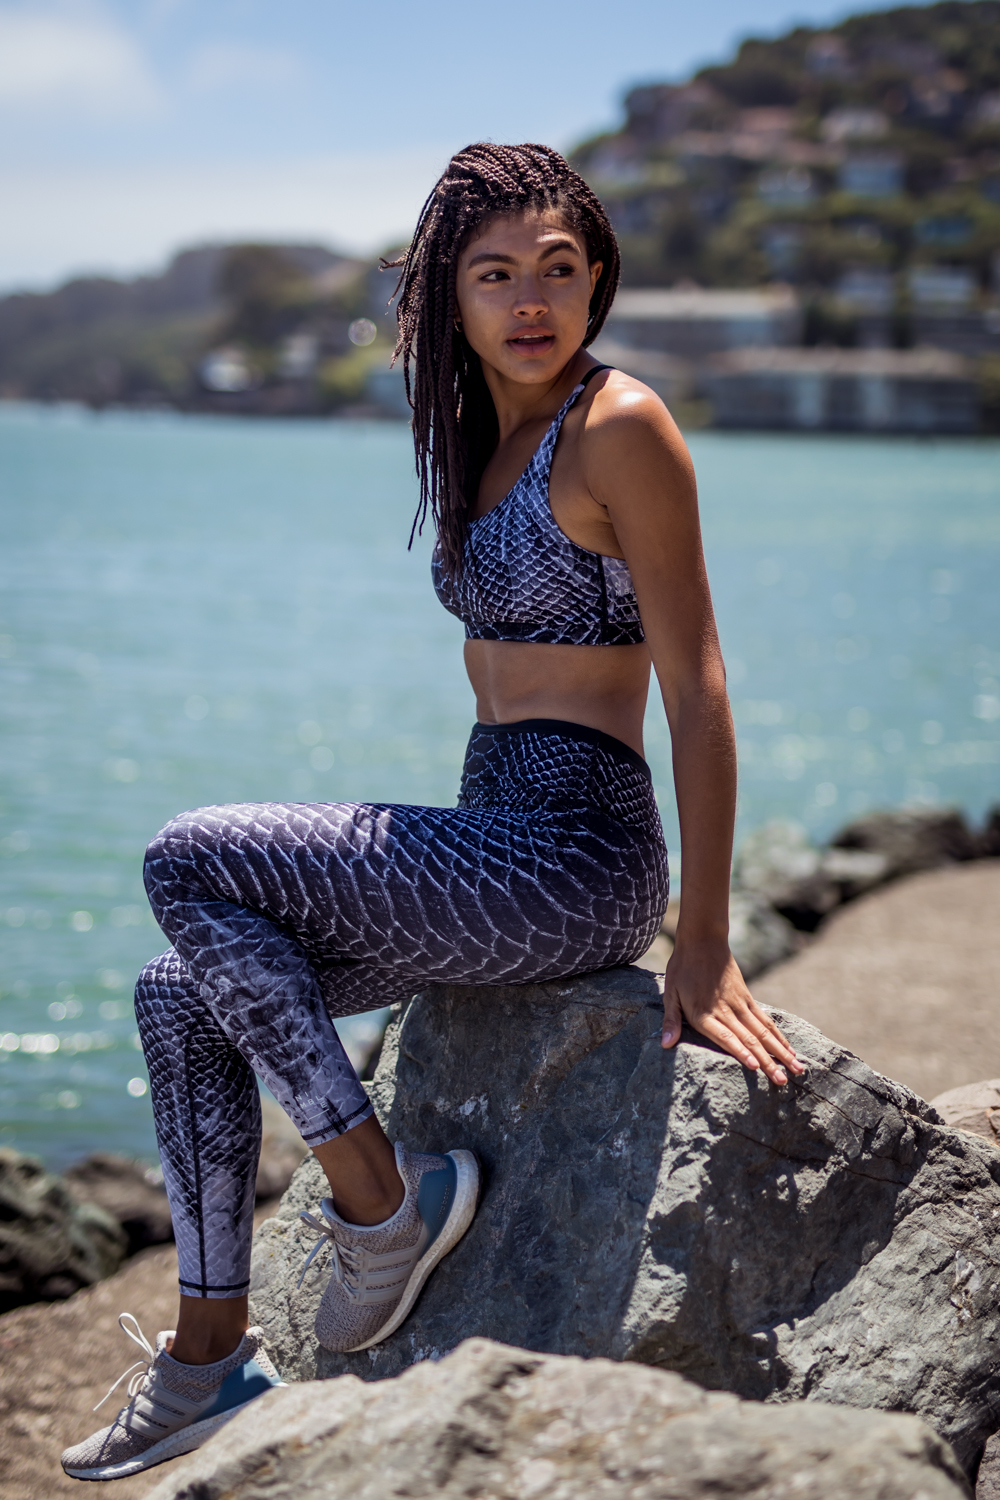 Nimble snake print leggings and sports bra Adidas Ultraboost 4.0